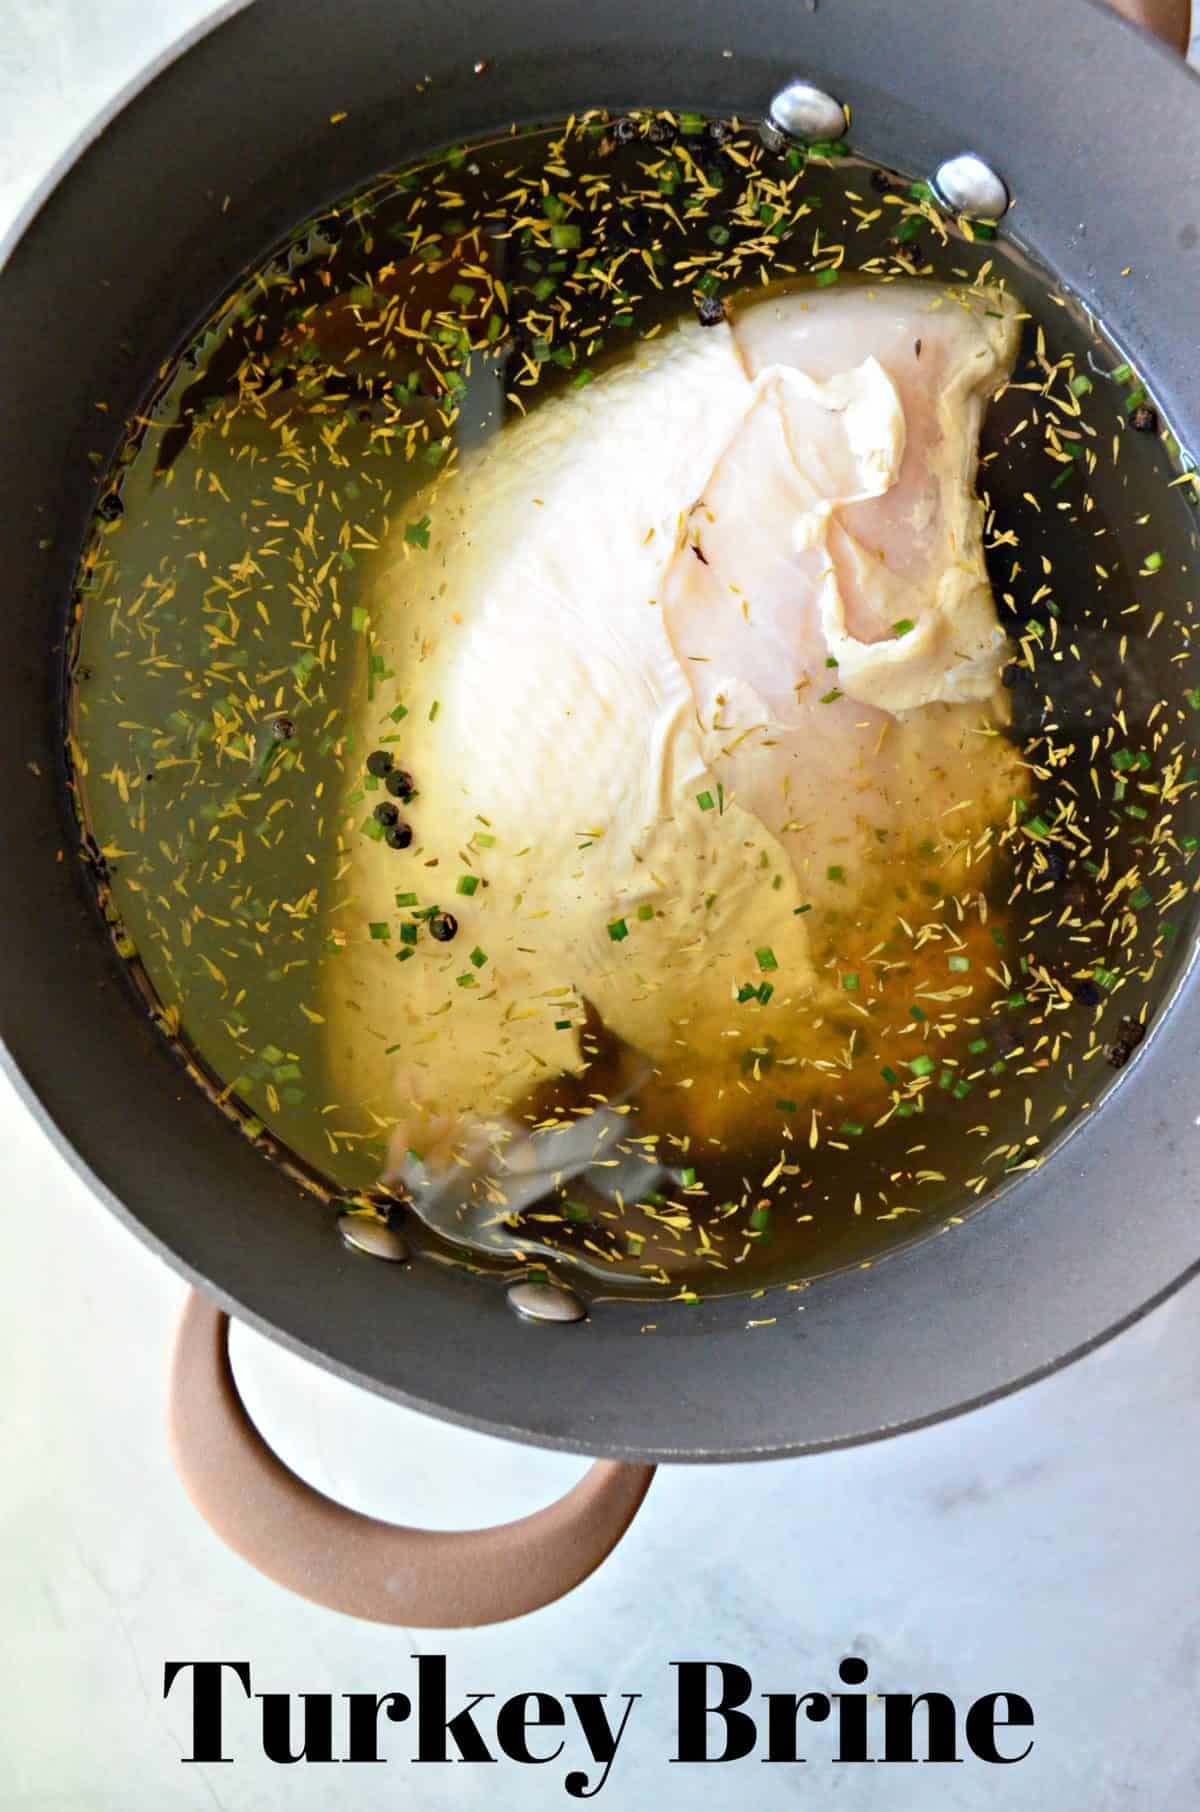 top view of raw Turkey brining in yellowish liquid with herbs in pot with title text.